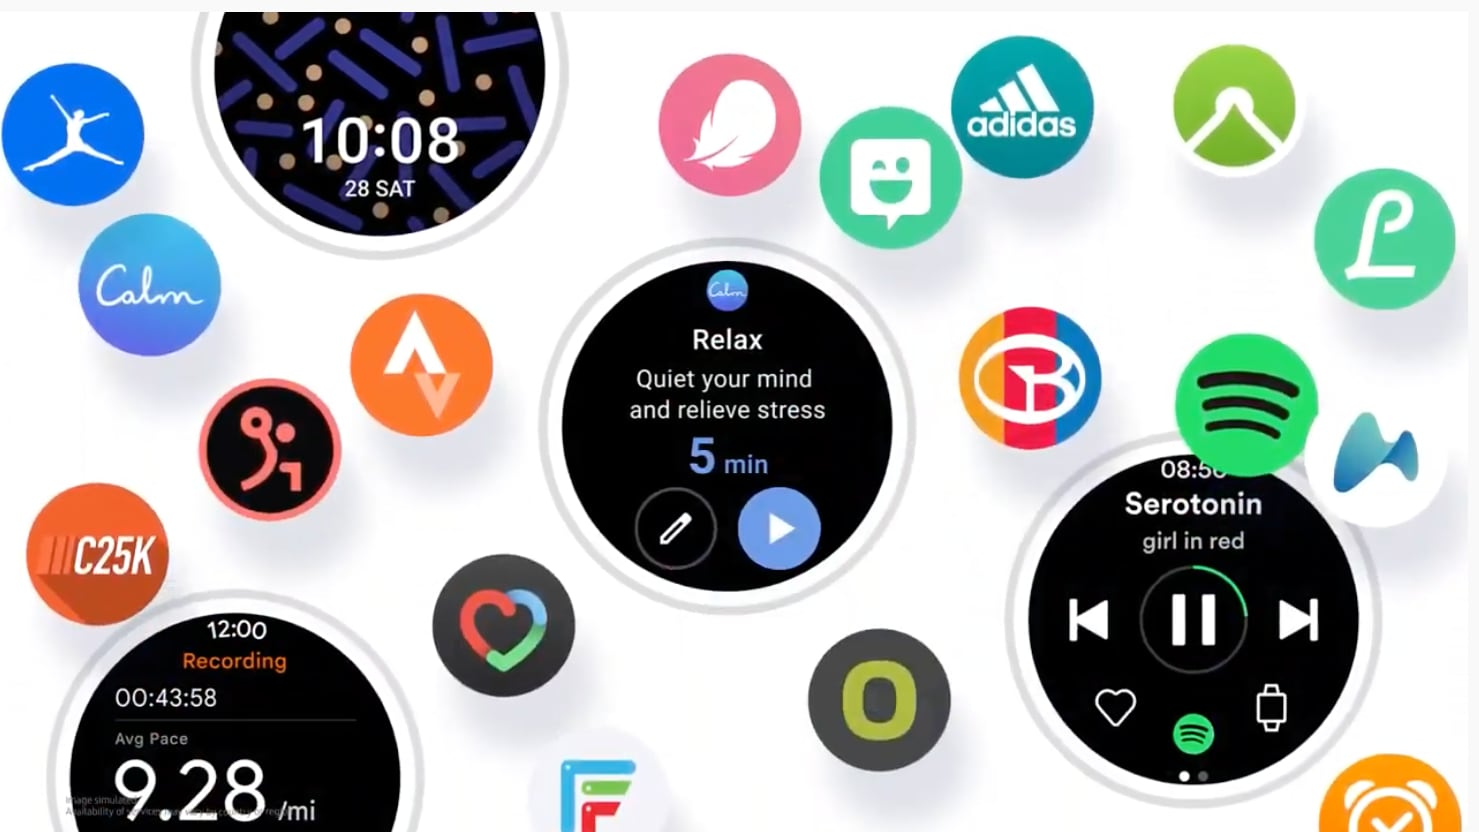 Samsung One UI Watch Features: Best Software Tools for Wear OS Galaxy Watch 4 - Fuentitech